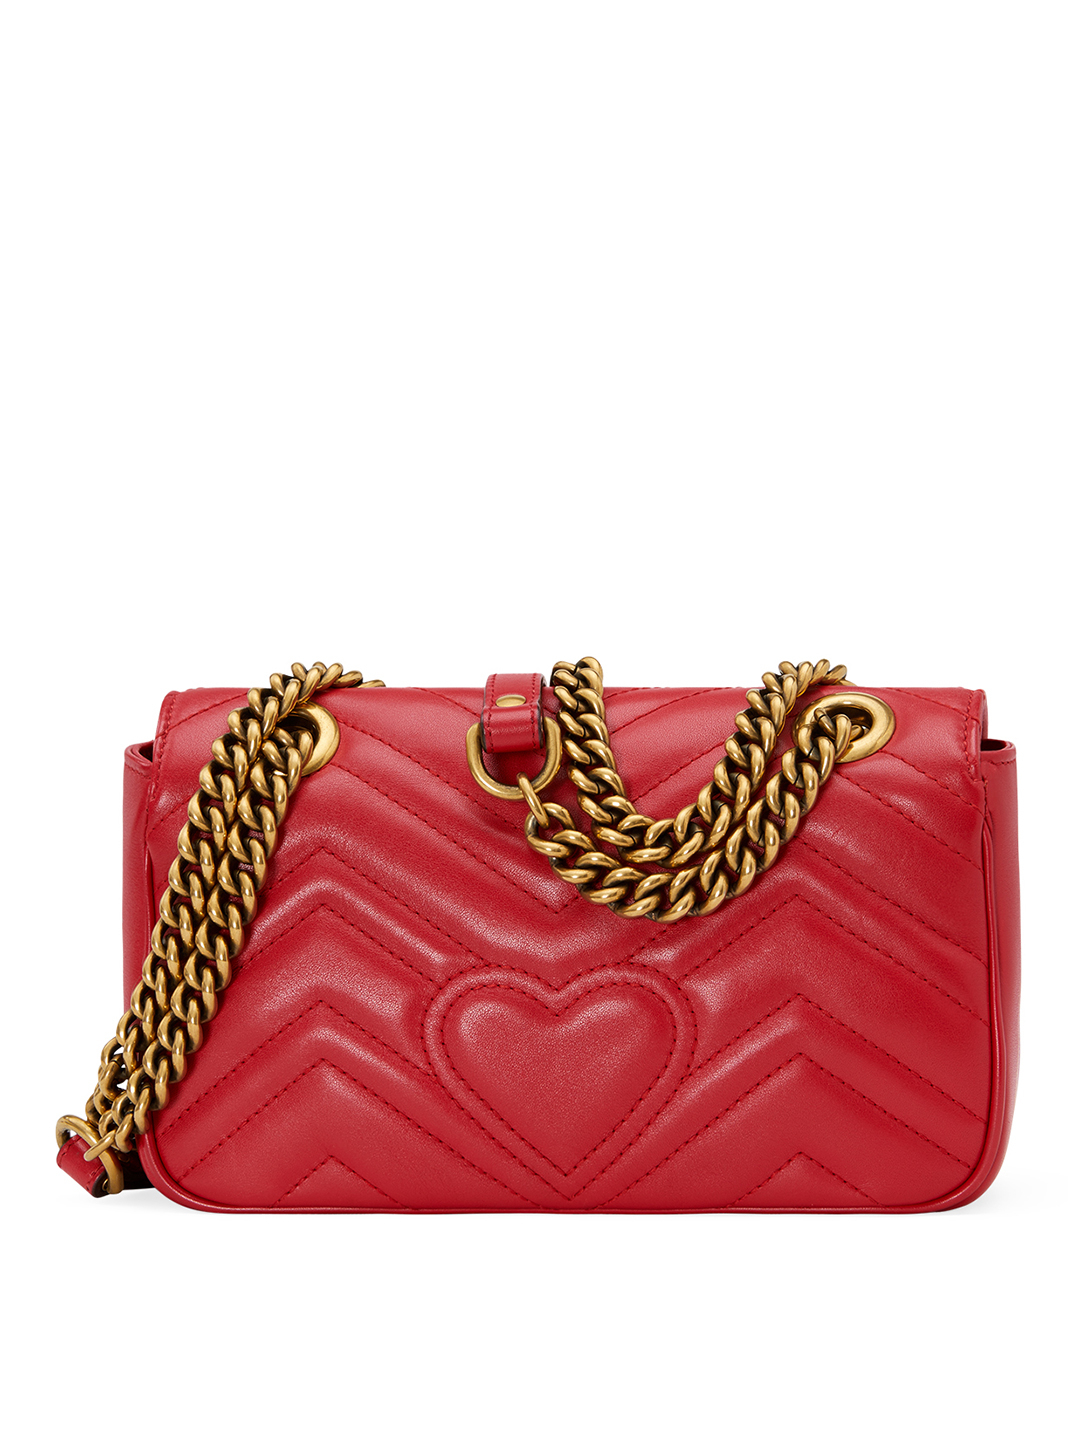 GUCCI Mini GG Marmont Leather Chain Shoulder Bag Women's Red